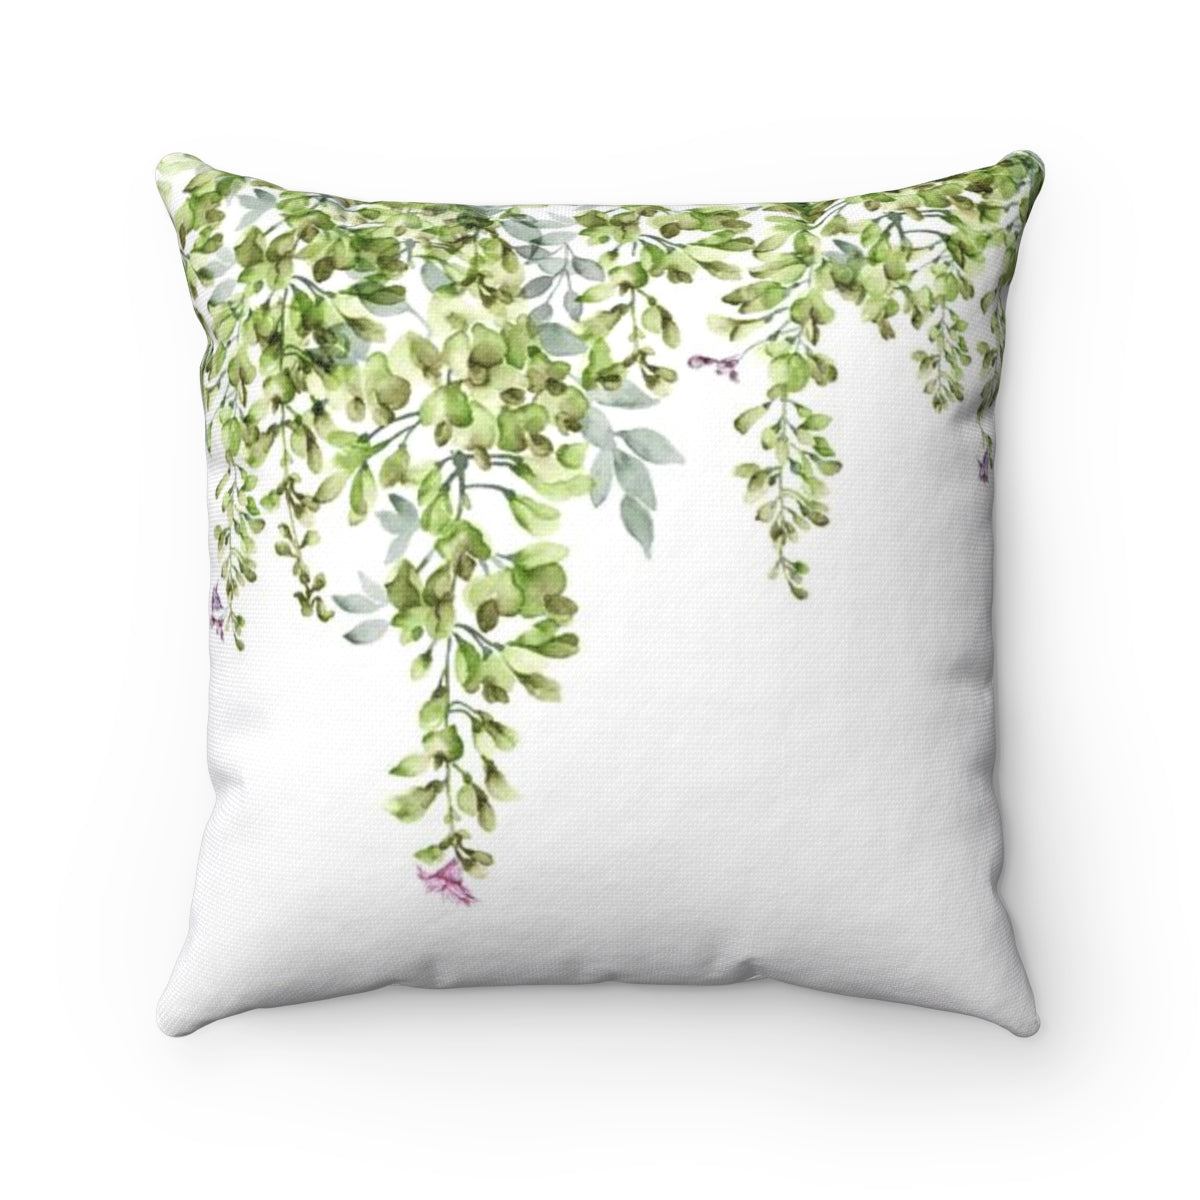 decorative throw pillow with green leaves design